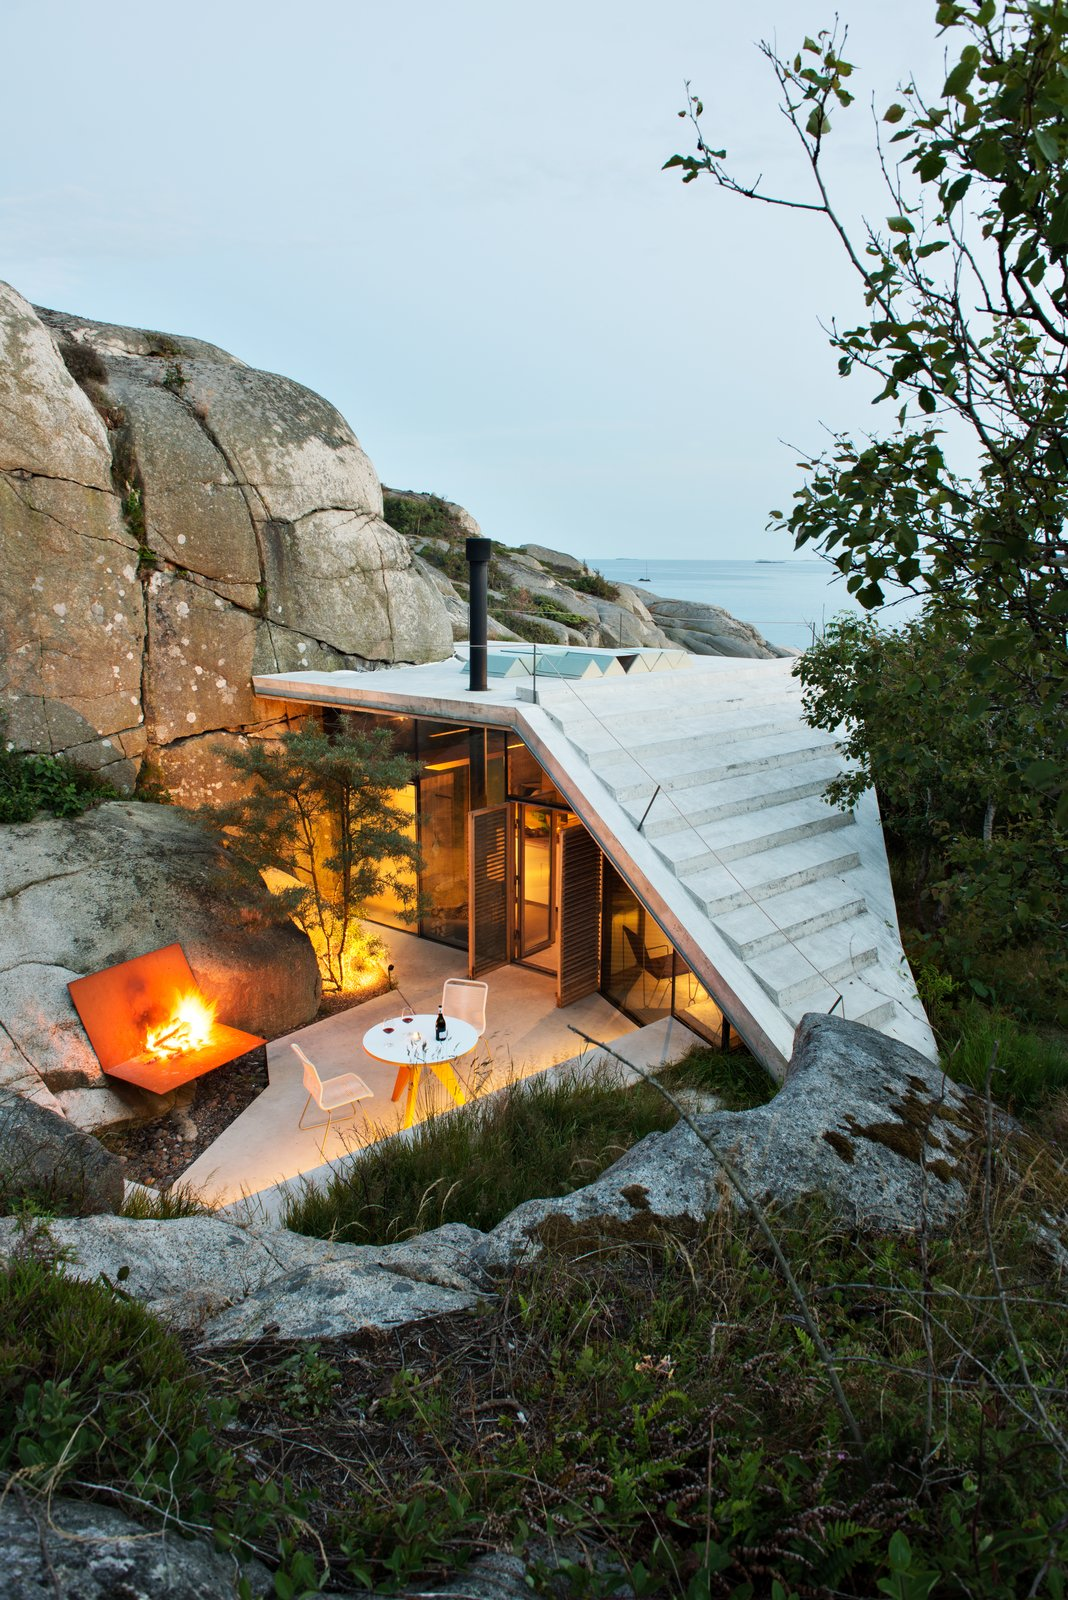 """Lung Hagem Arkitekter said: """"The roof is executed in 270mm thick reinforced concrete with 20mm VIP insulation underneath. The concrete itself is water resistant, thus no additional roofing materials are required. As a result, the roof is a smooth white surface creating a dialogue with the rocky landscape, and giving the cabin its distinctive character."""""""